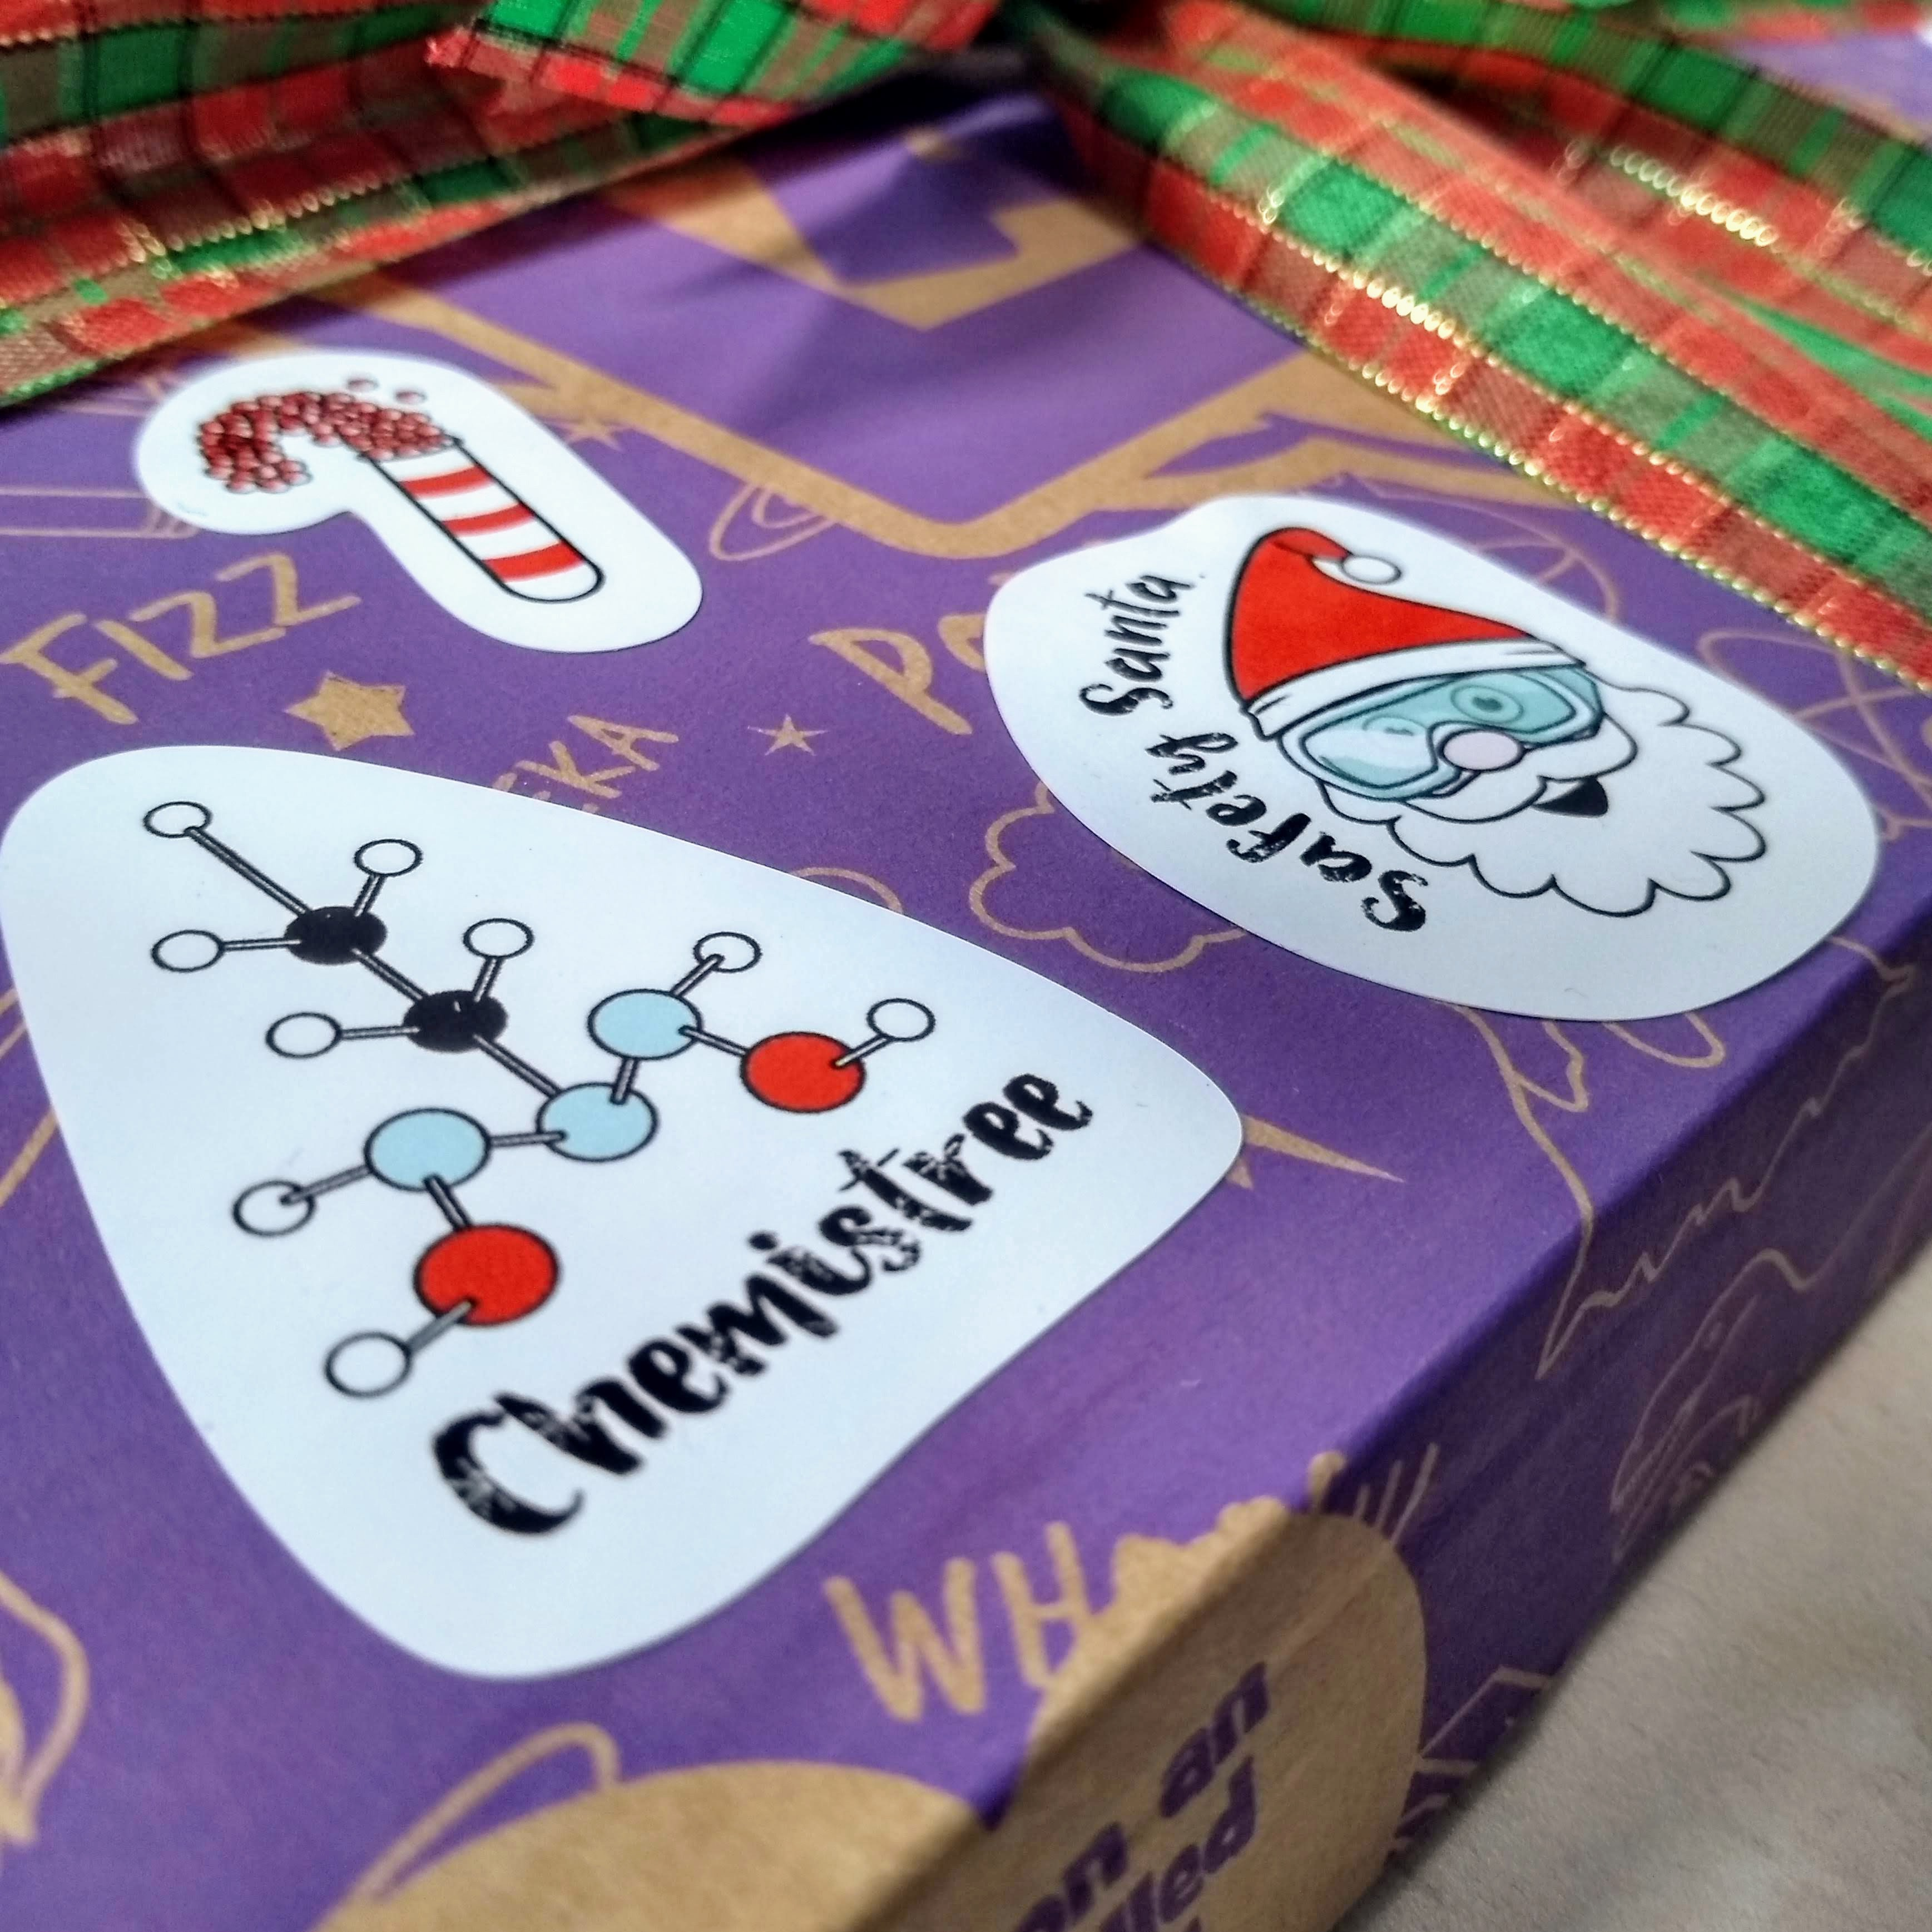 Each sticker combines science and festive fun in its own way!